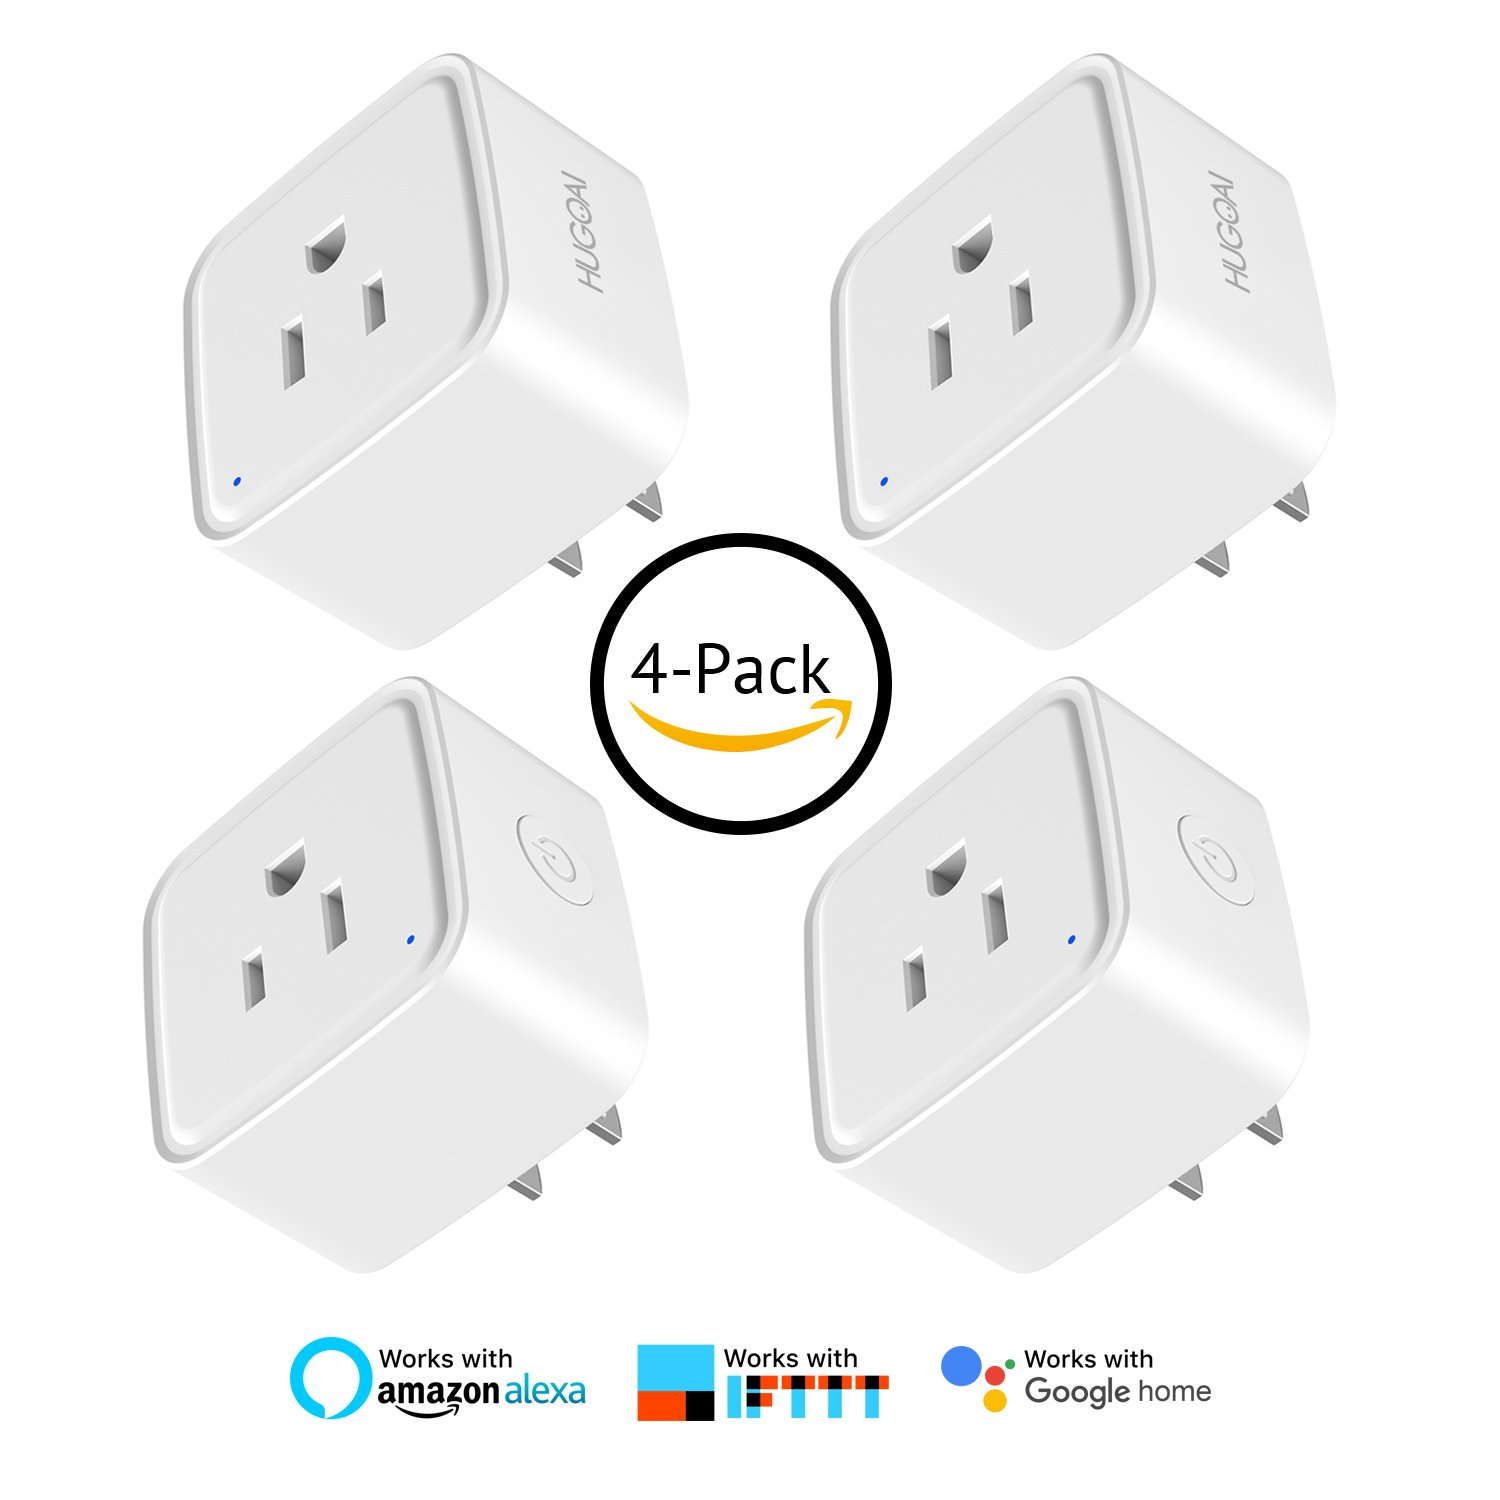 WiFi Smart Plug, HUGOAI Wifi Smart Outlet Wireless Socket 4 Packs, Compatible with Alexa &Google Home/IFTTT, Remote Control On/Off from Anywhere, No Hub Required by HUGOAI